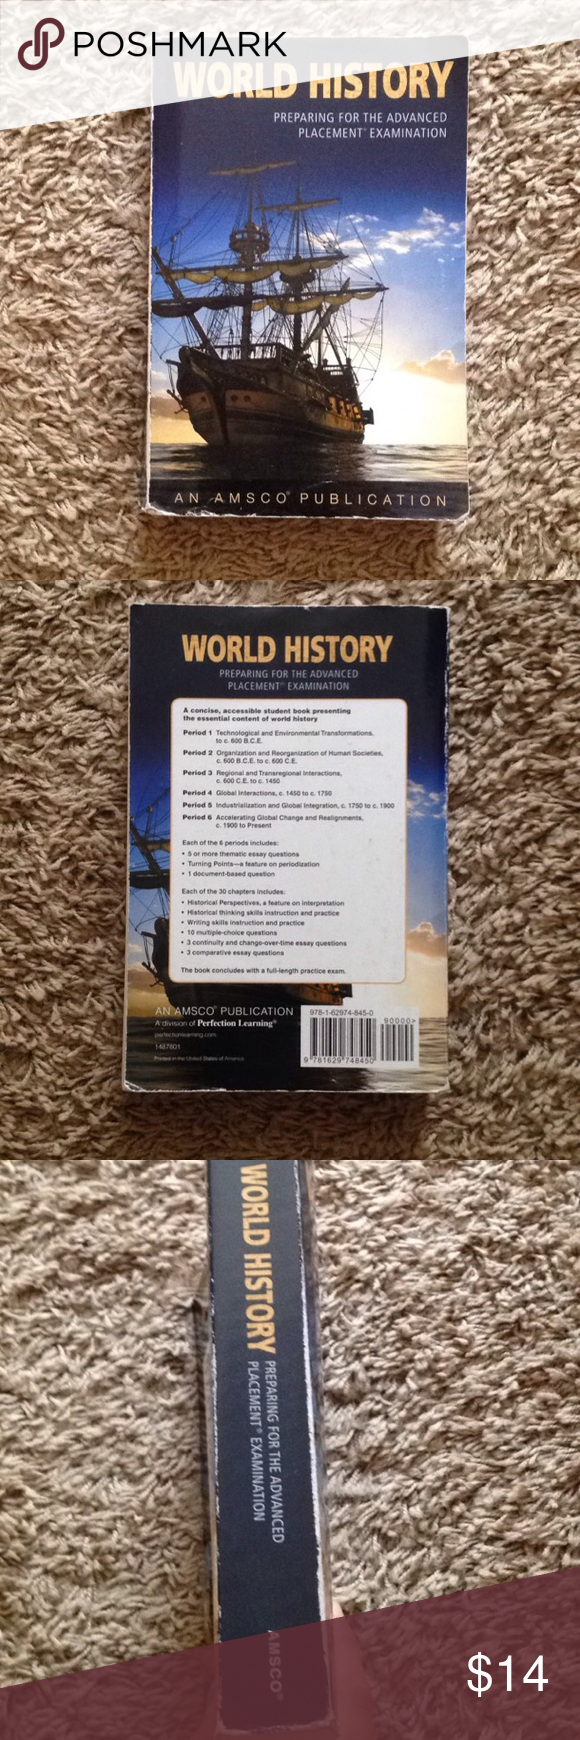 World History: Preparing for the AP Exam by AMSCO World History Book